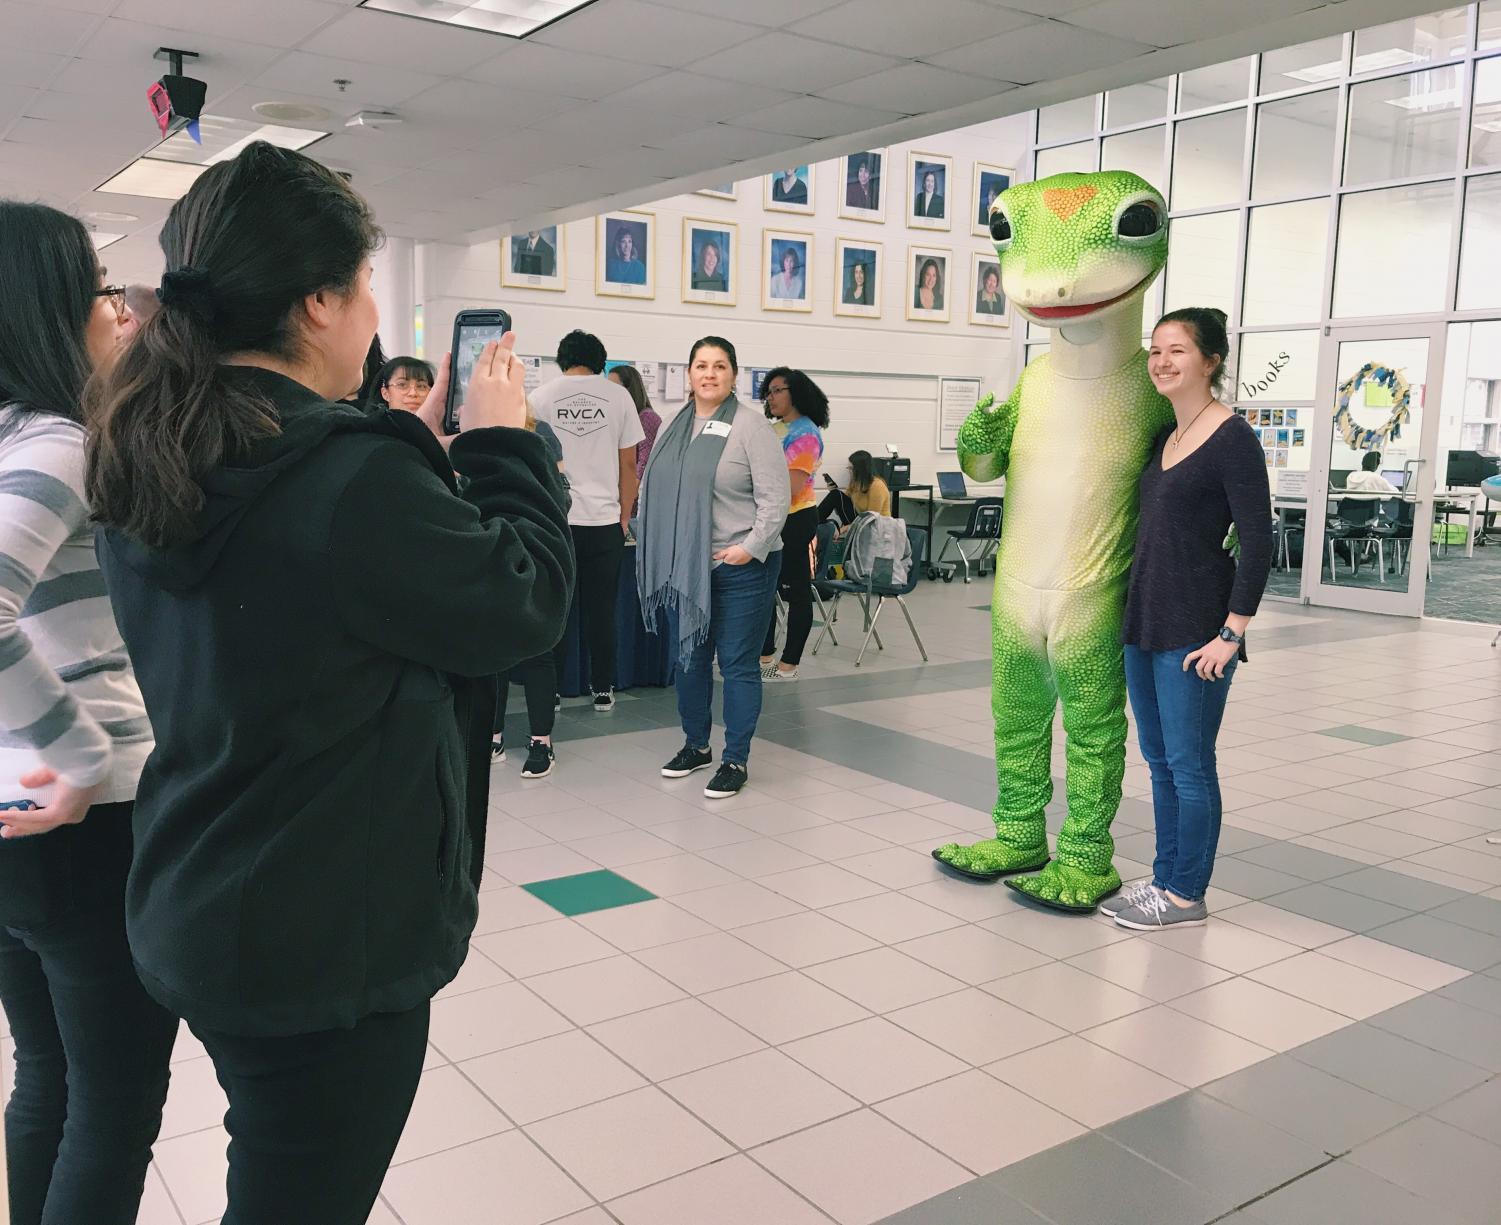 Junior Liza Young poses for a photo with the Geico Gecko outside of the library on Wednesday, Jan. 9.